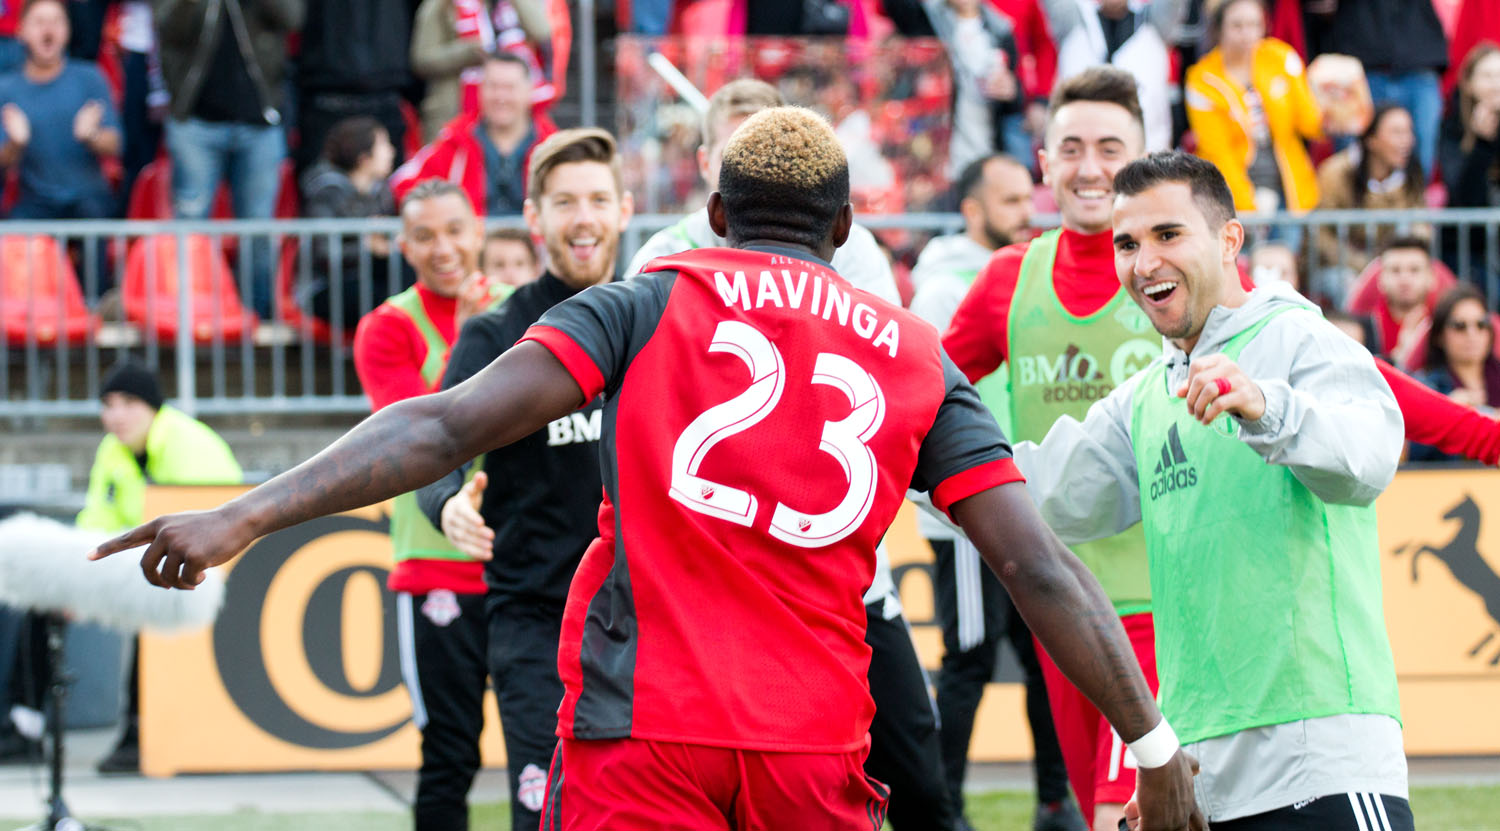 Chris Mavinga celebrating the second Toronto FC goal with players from the bench. Image by Dennis Marciniak of denMAR Photogrpahy.